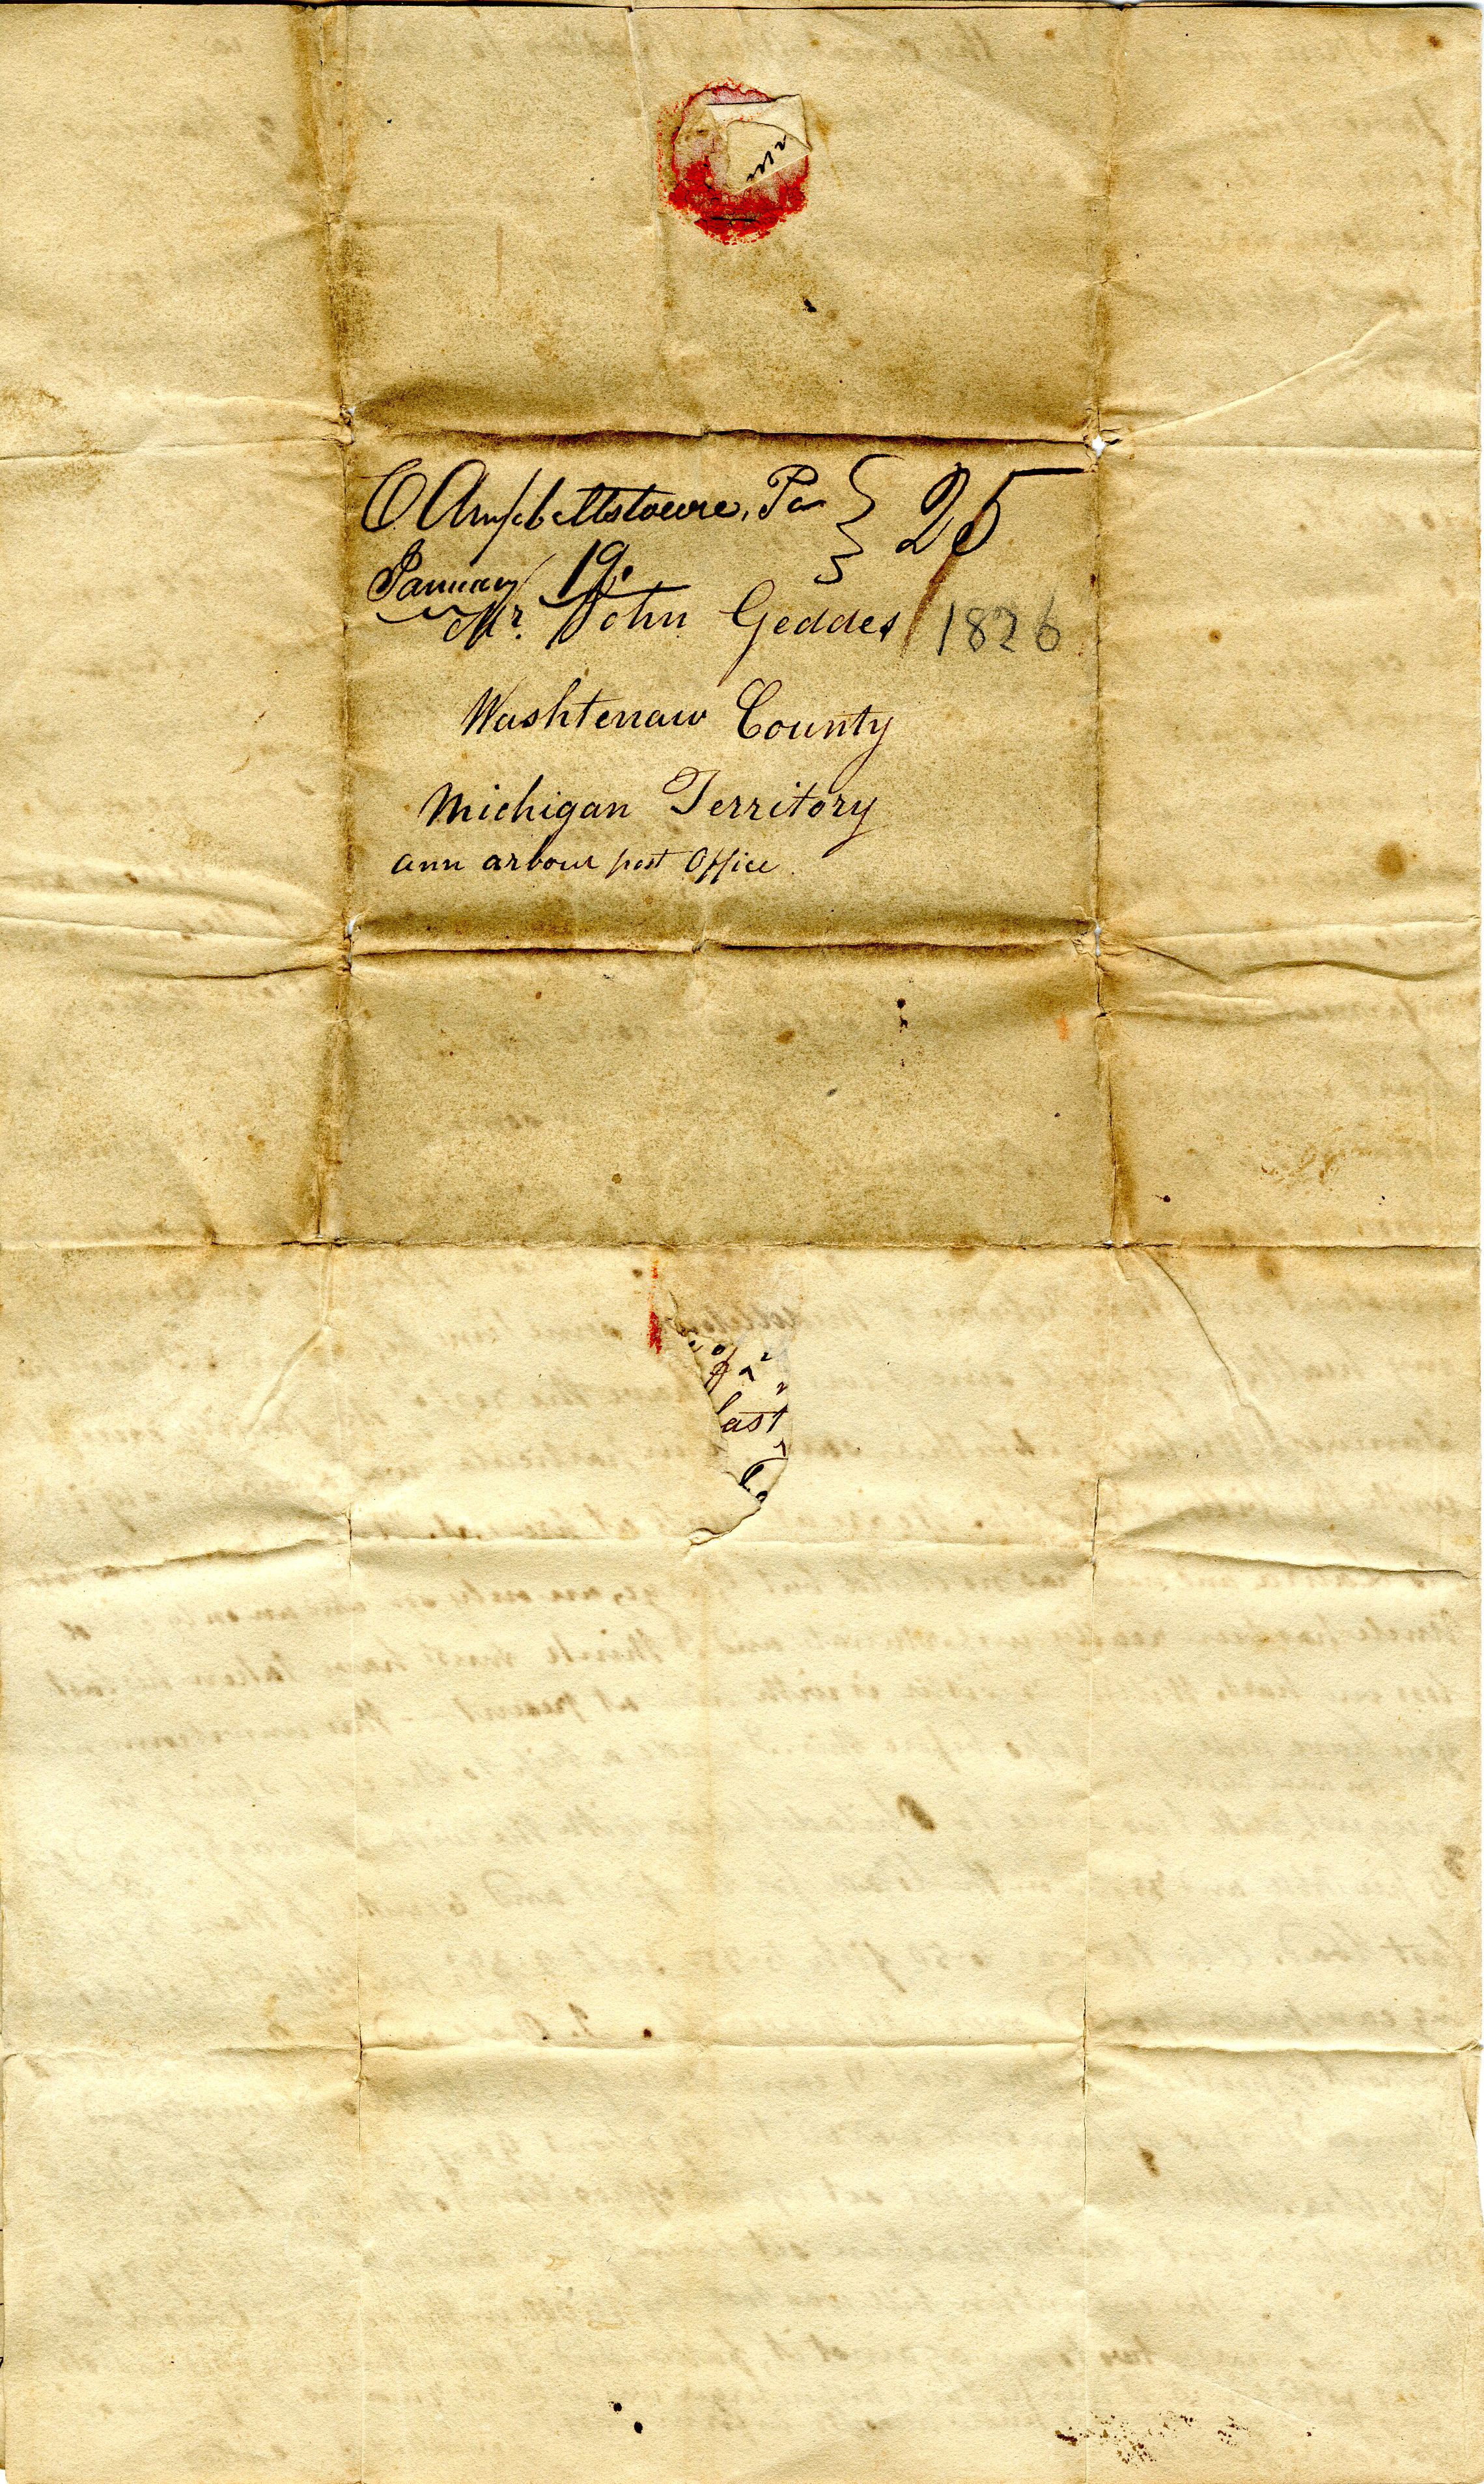 Letter from William Geddes to John Geddes, January 16, 1826 image